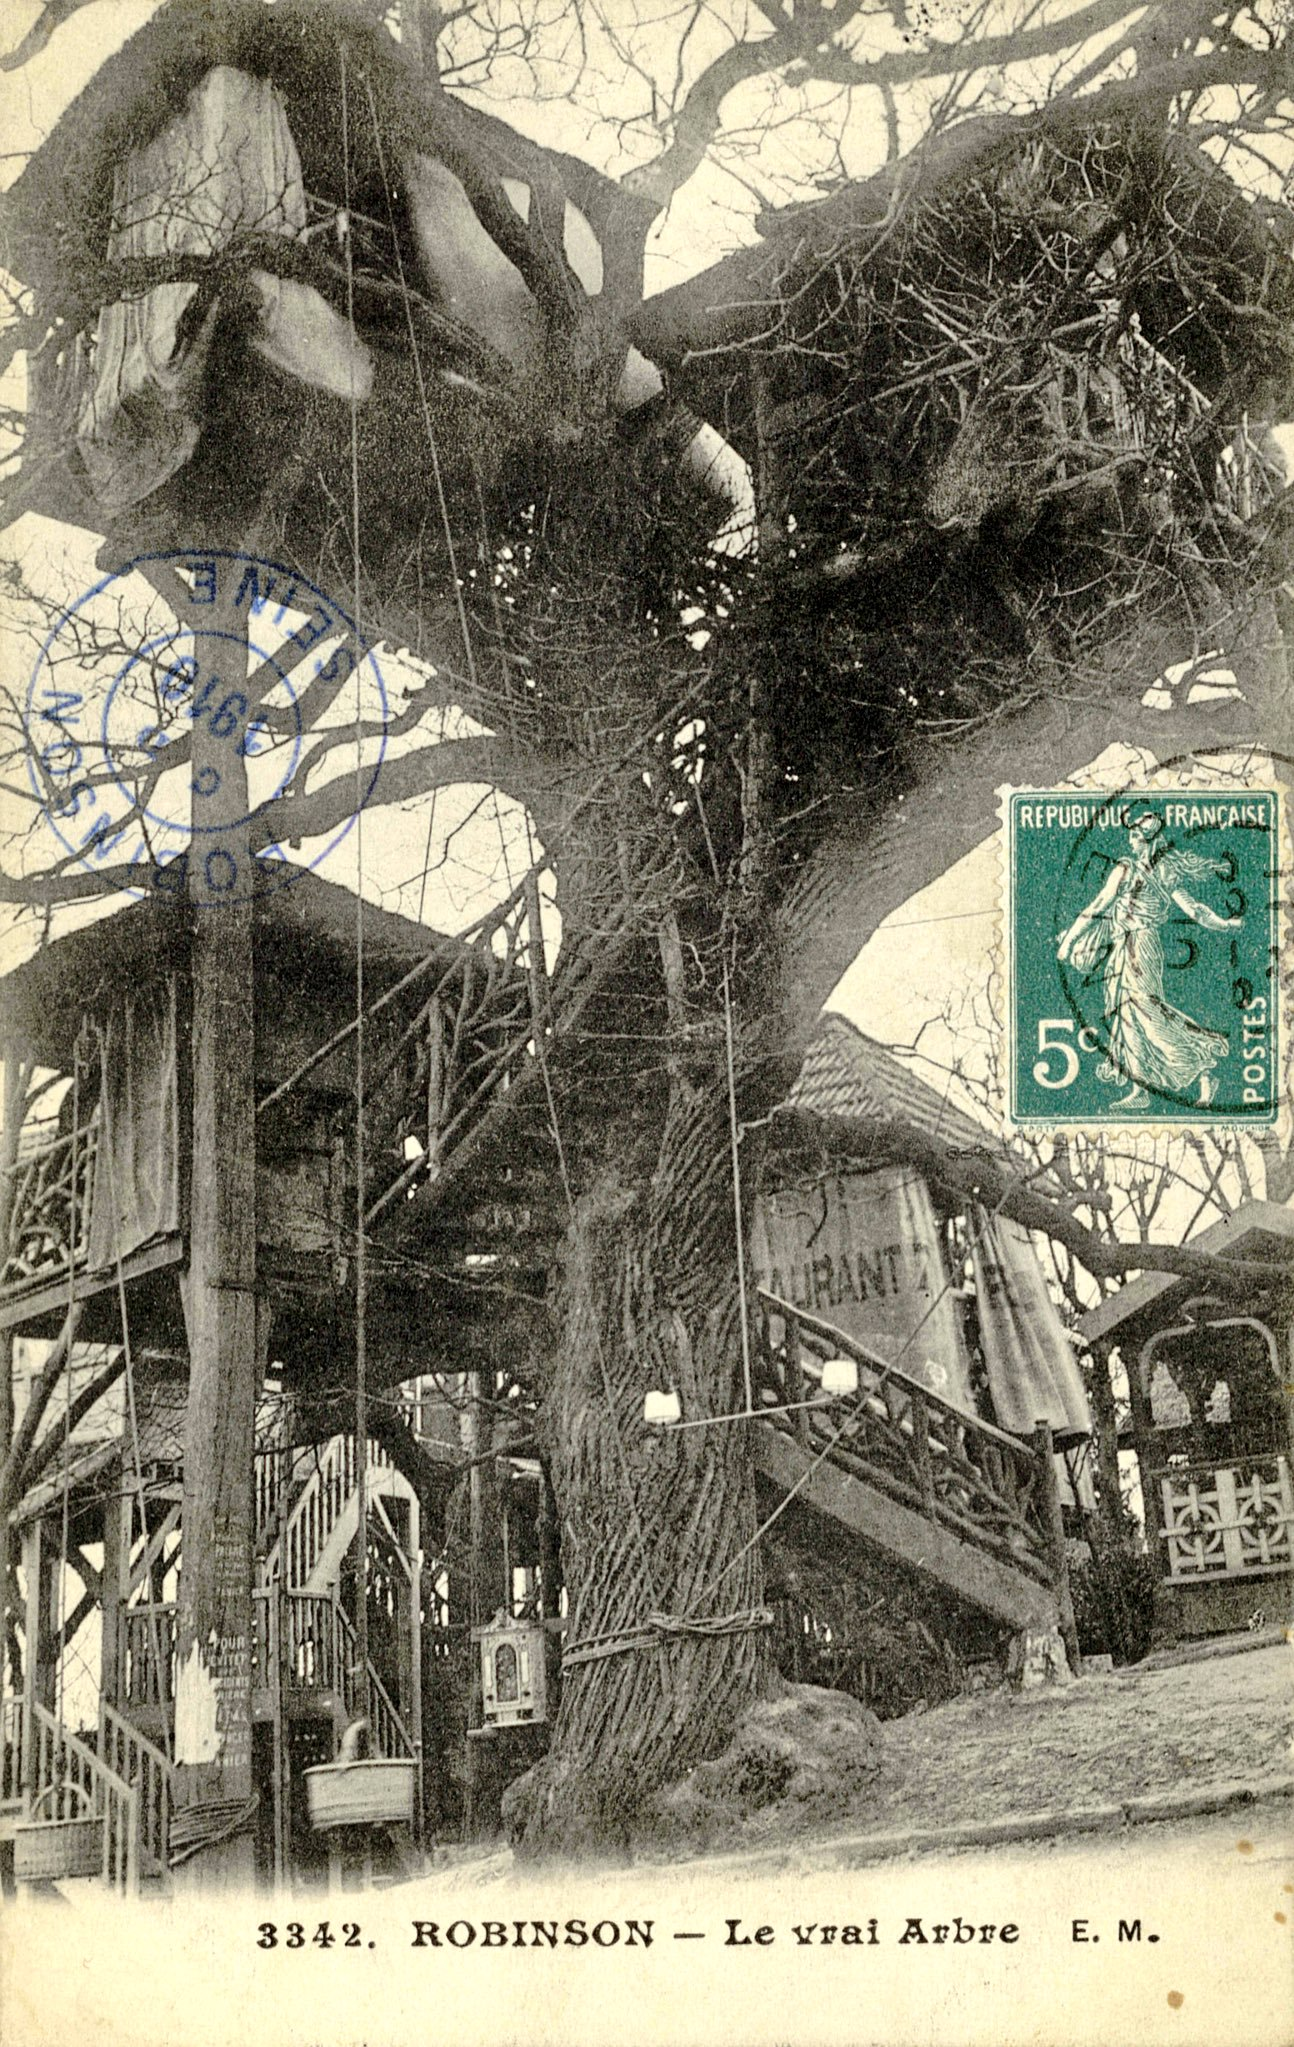 In 1848 A French Commune Built an Interconnected Treehouse Cabaret Based on Swiss Family Robinson